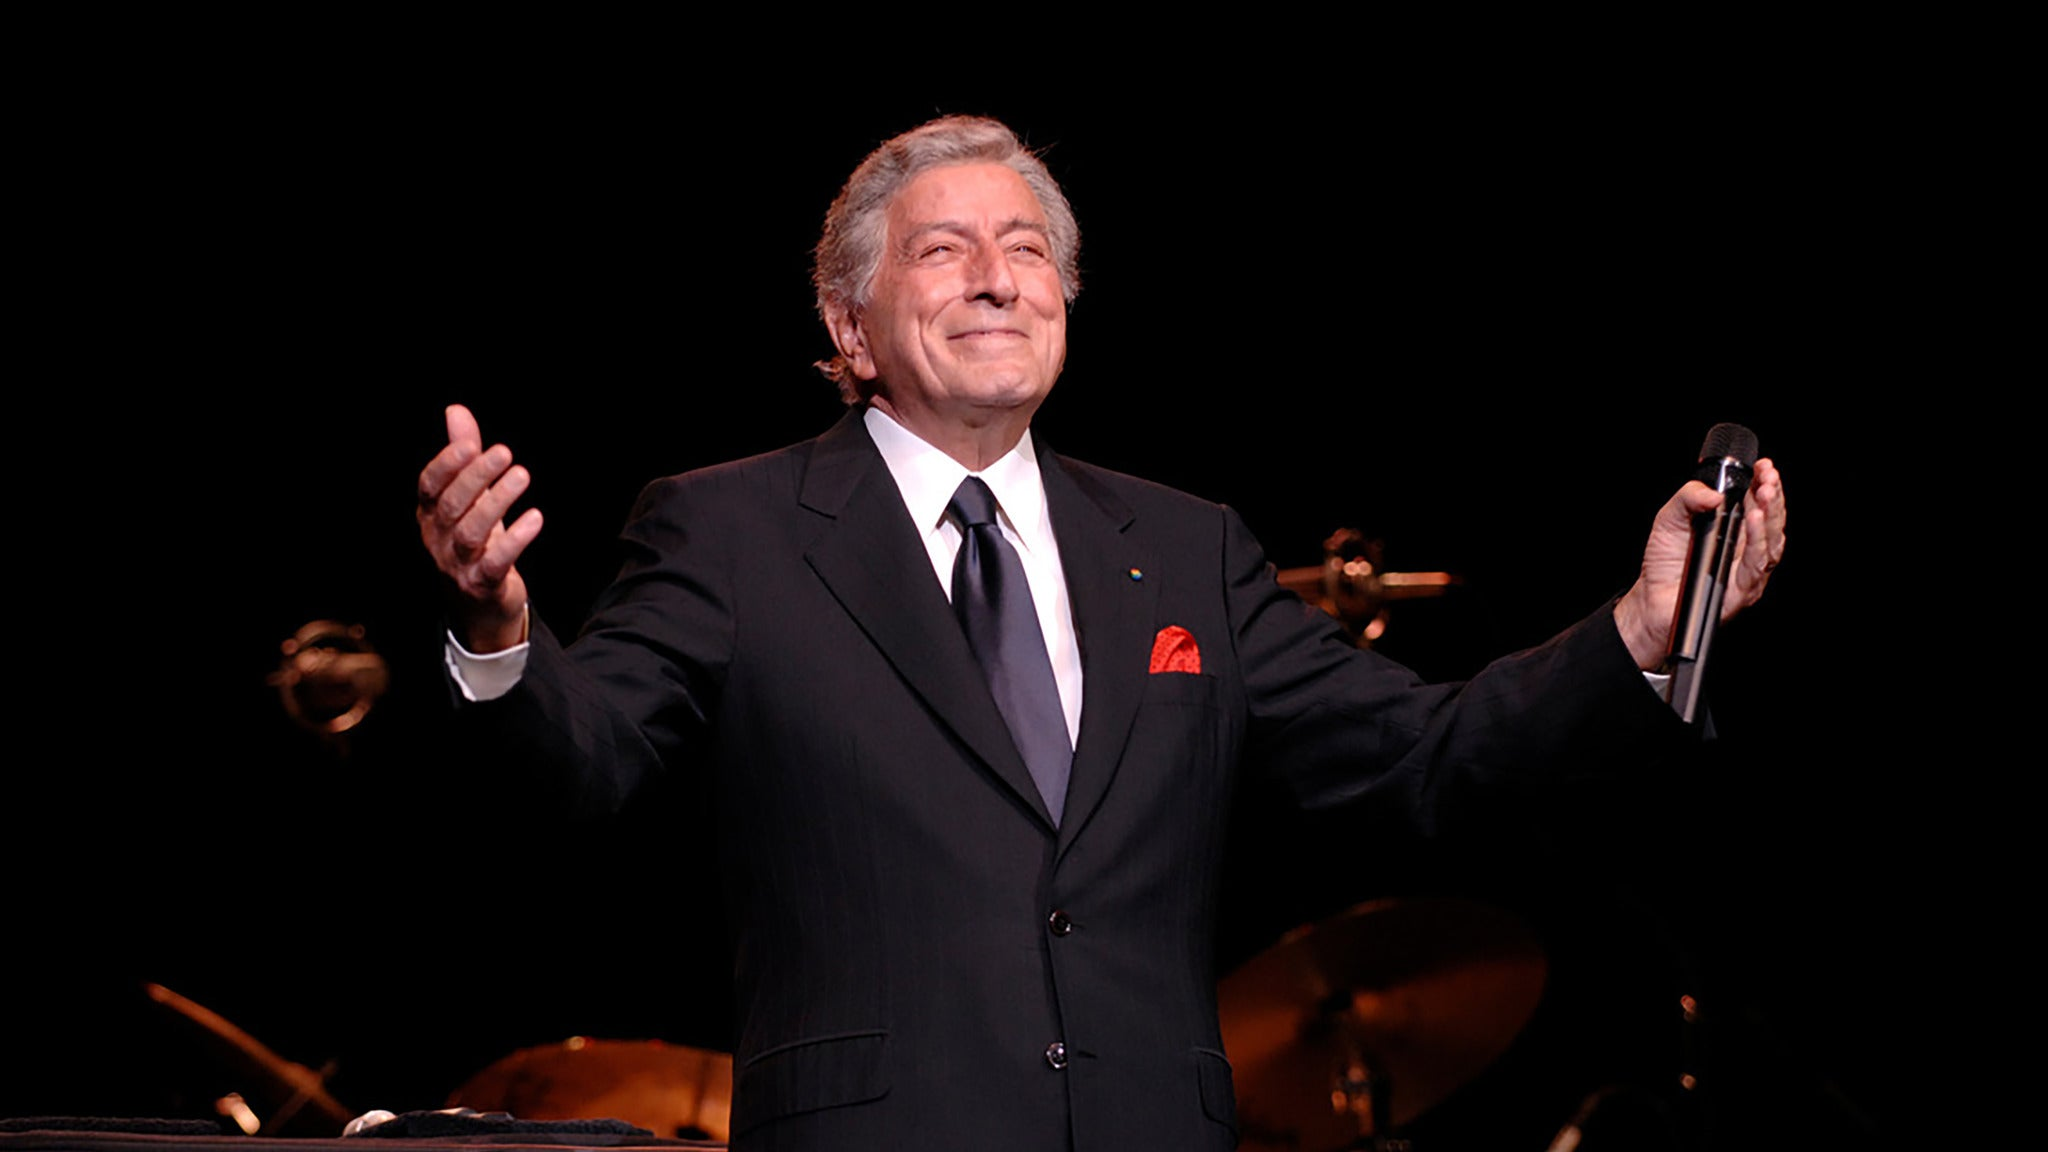 One Last Time: An Evening with Tony Bennett & Lady Gaga